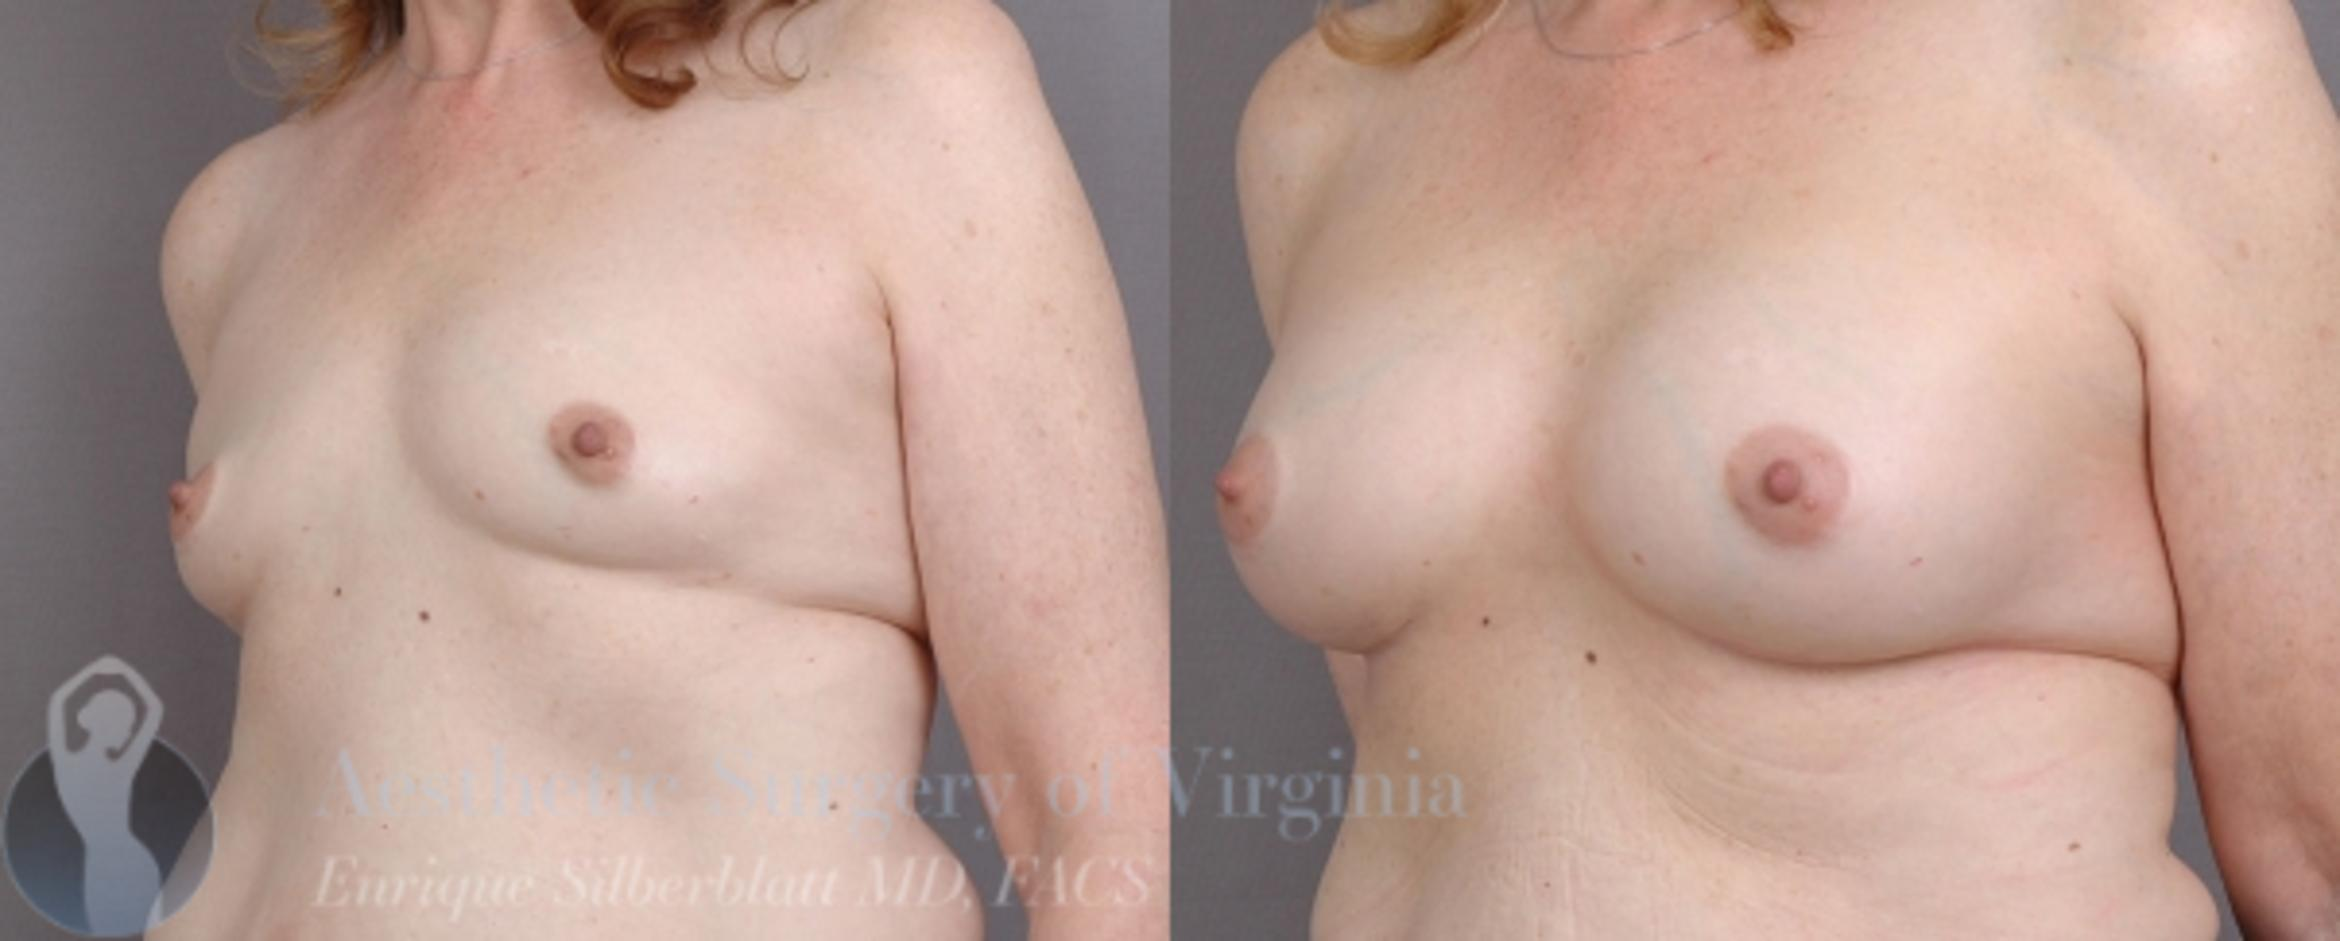 Breast Augmentation Case 16 Before & After View #2 | Roanoke, VA | Aesthetic Surgery of Virginia: Enrique Silberblatt, MD